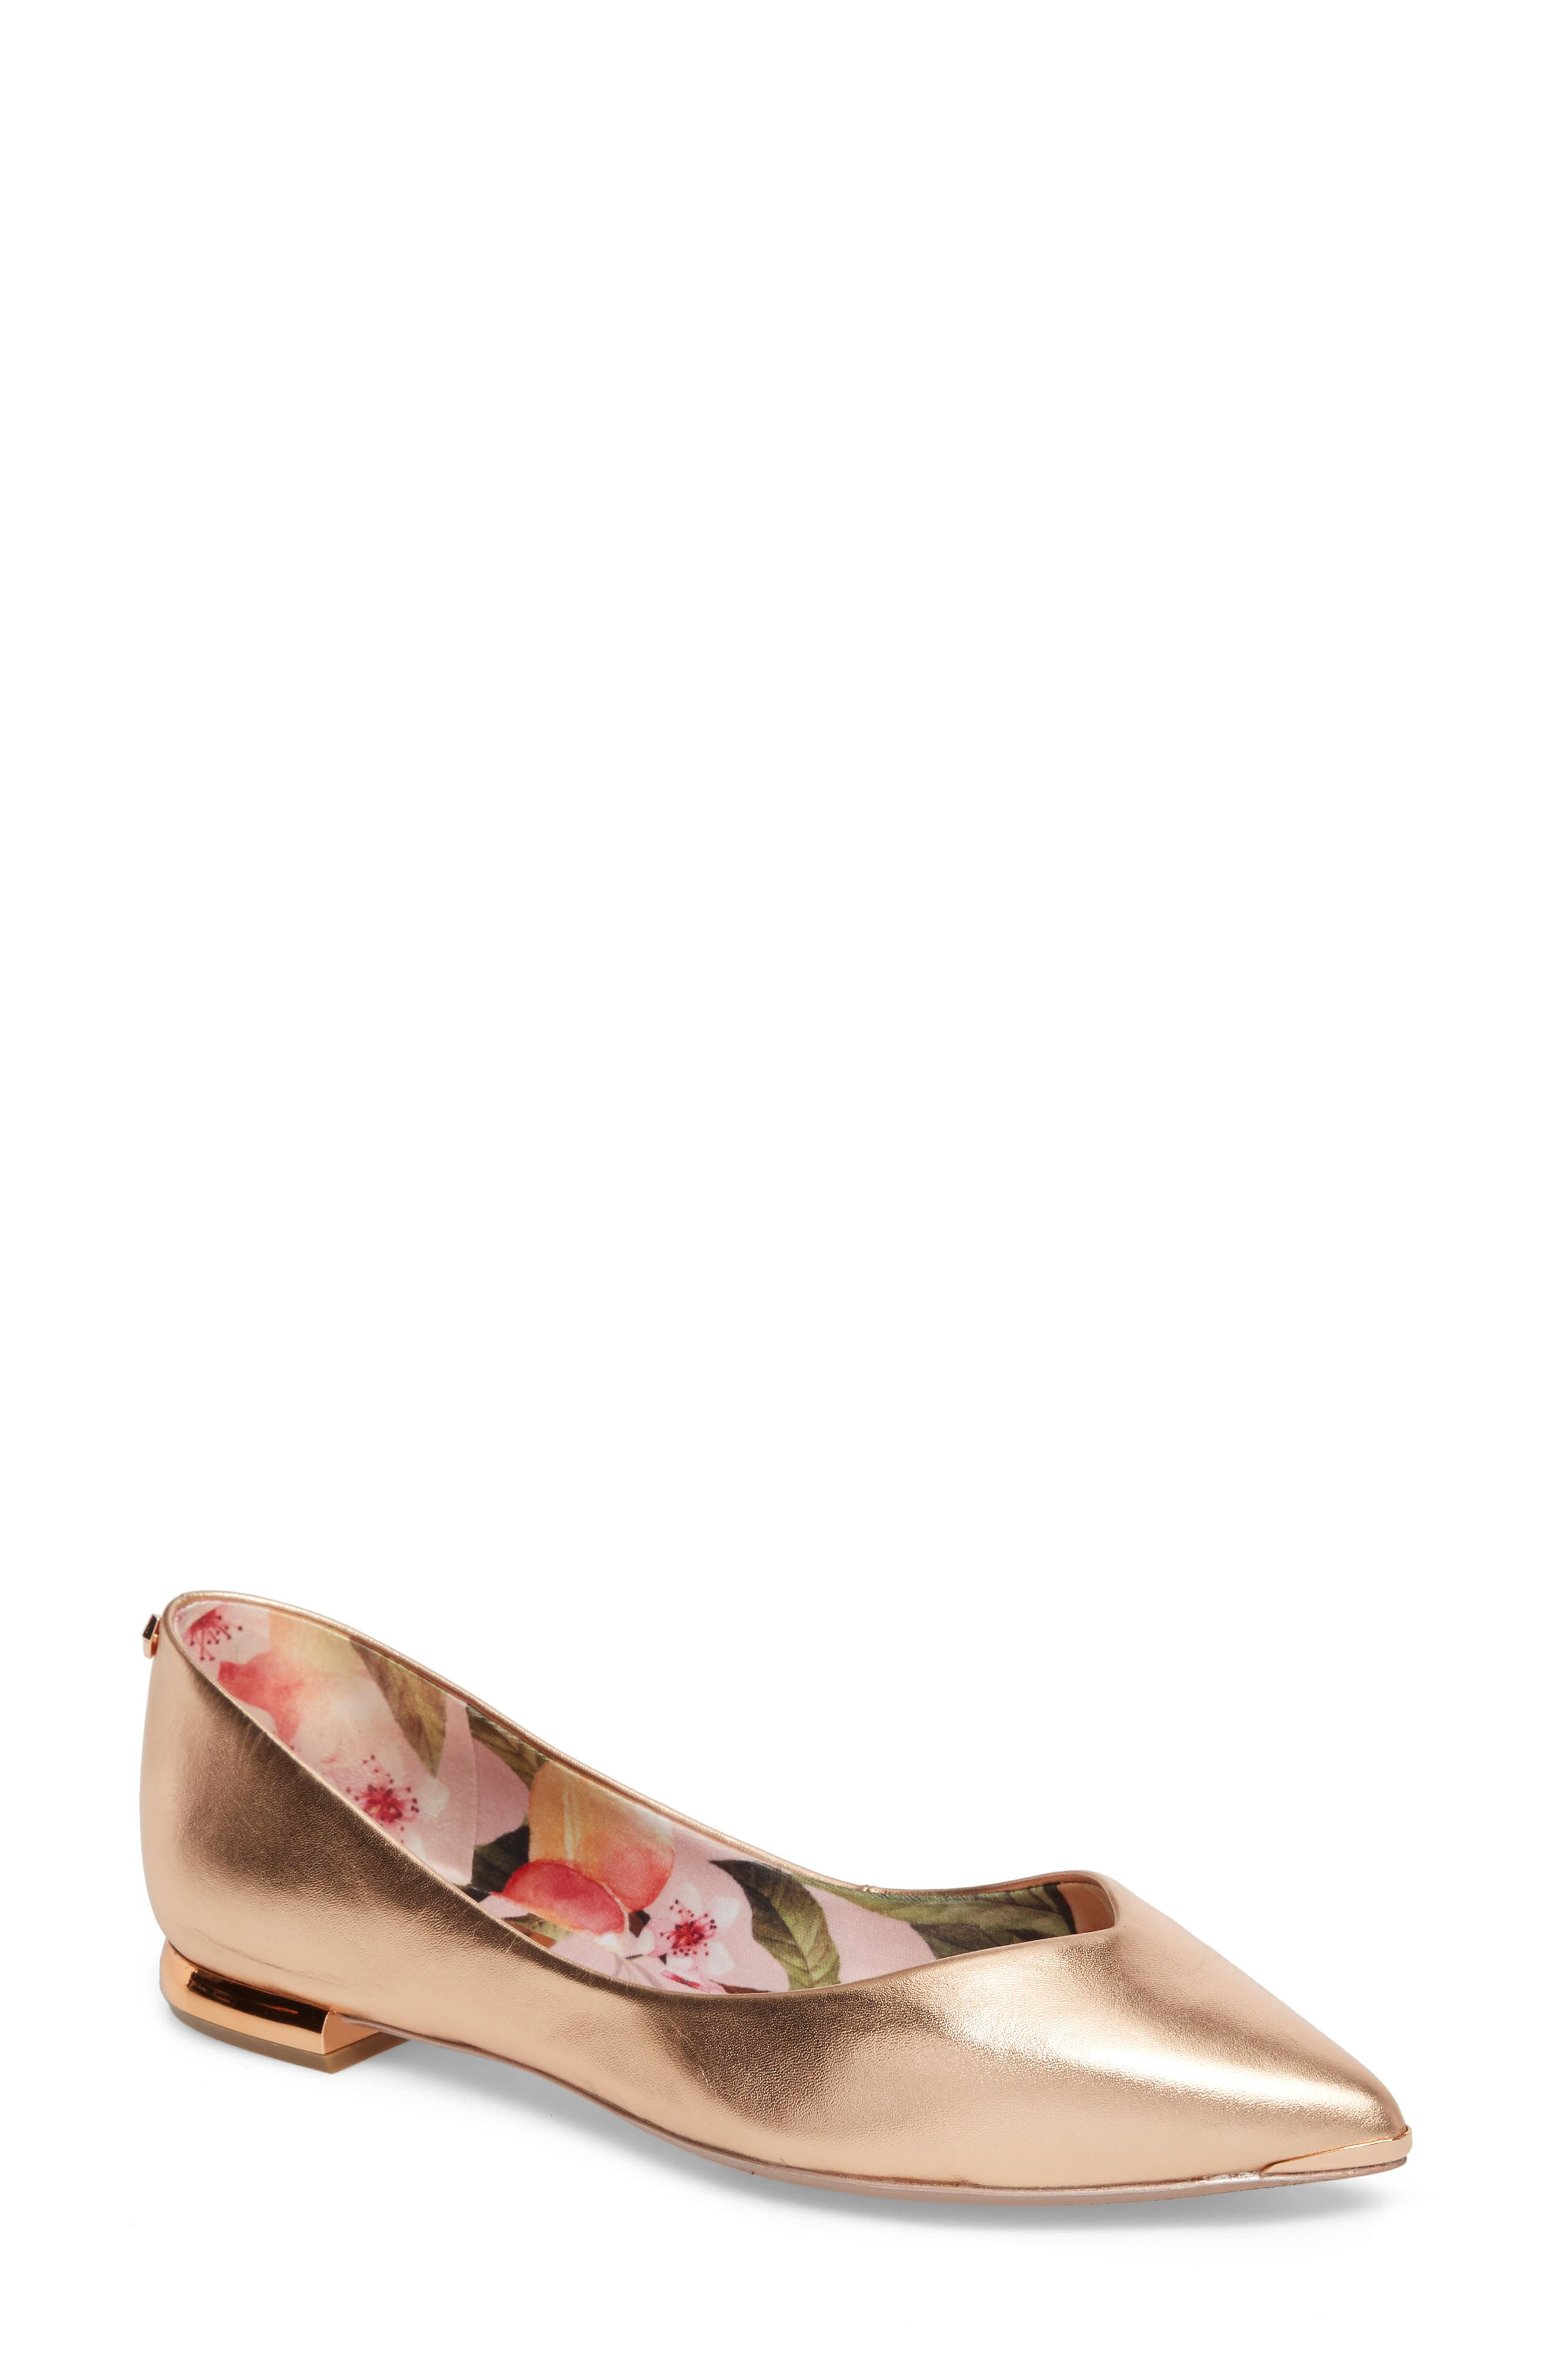 Grasce Flat,                             Main thumbnail 1, color,                             ROSE GOLD LEATHER